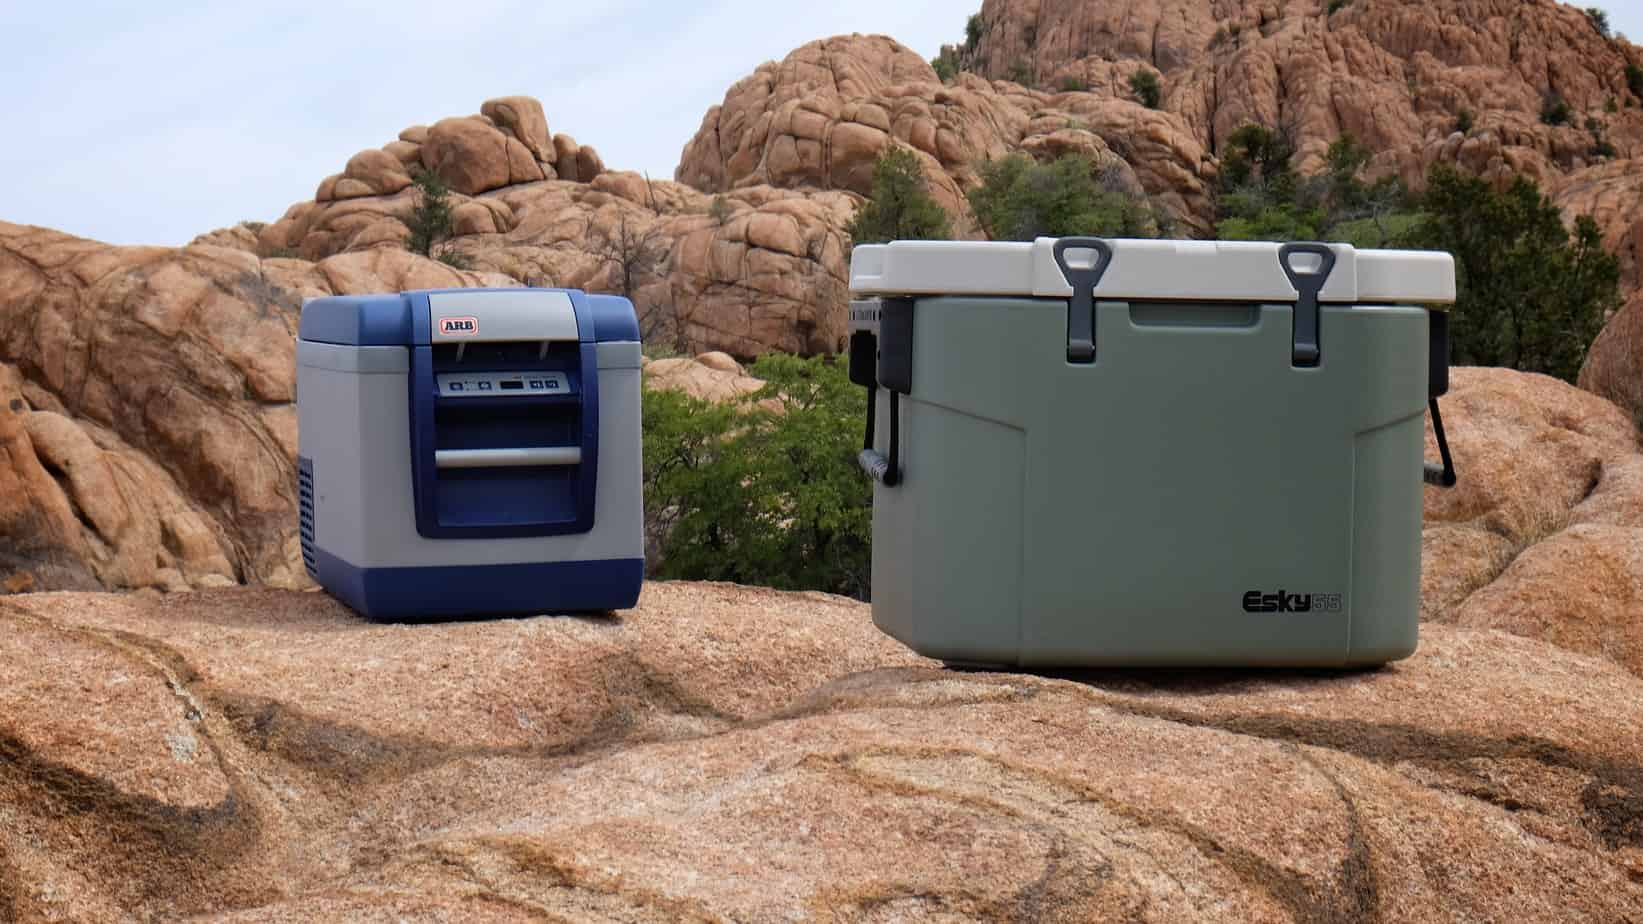 Head to Head: Refrigerator or cooler